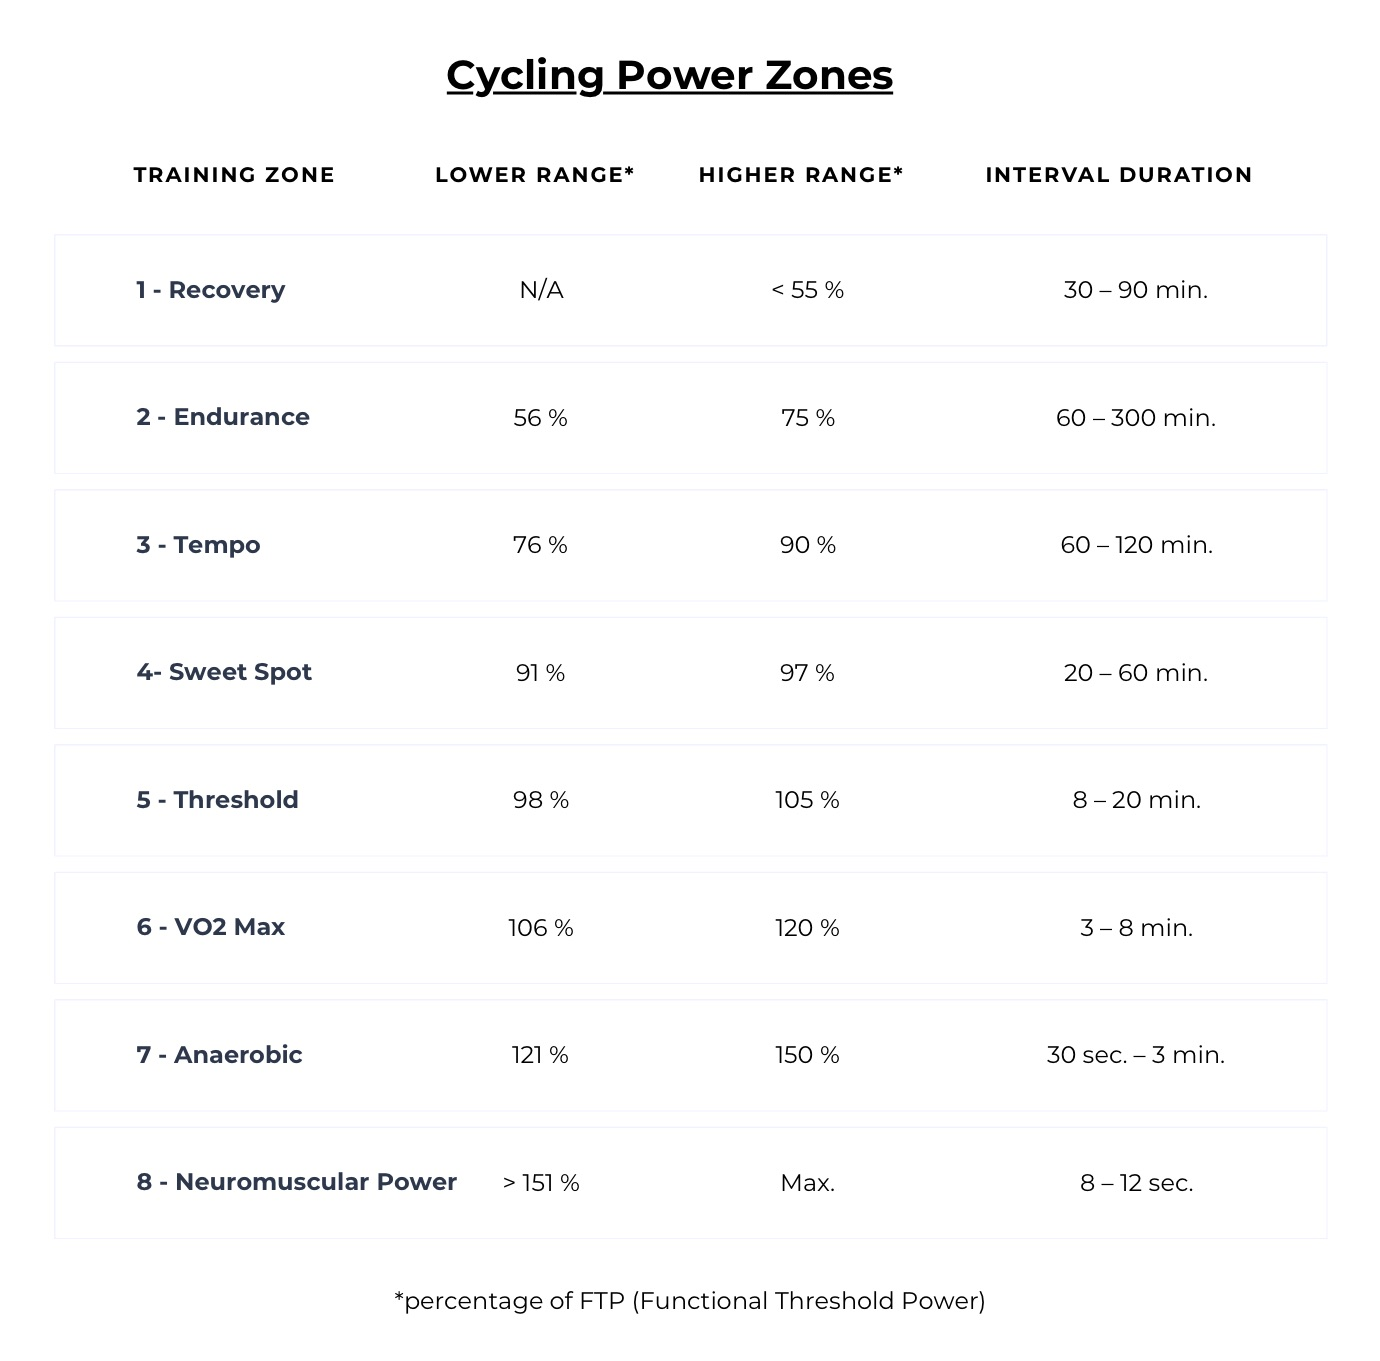 Cycling Zones base on power